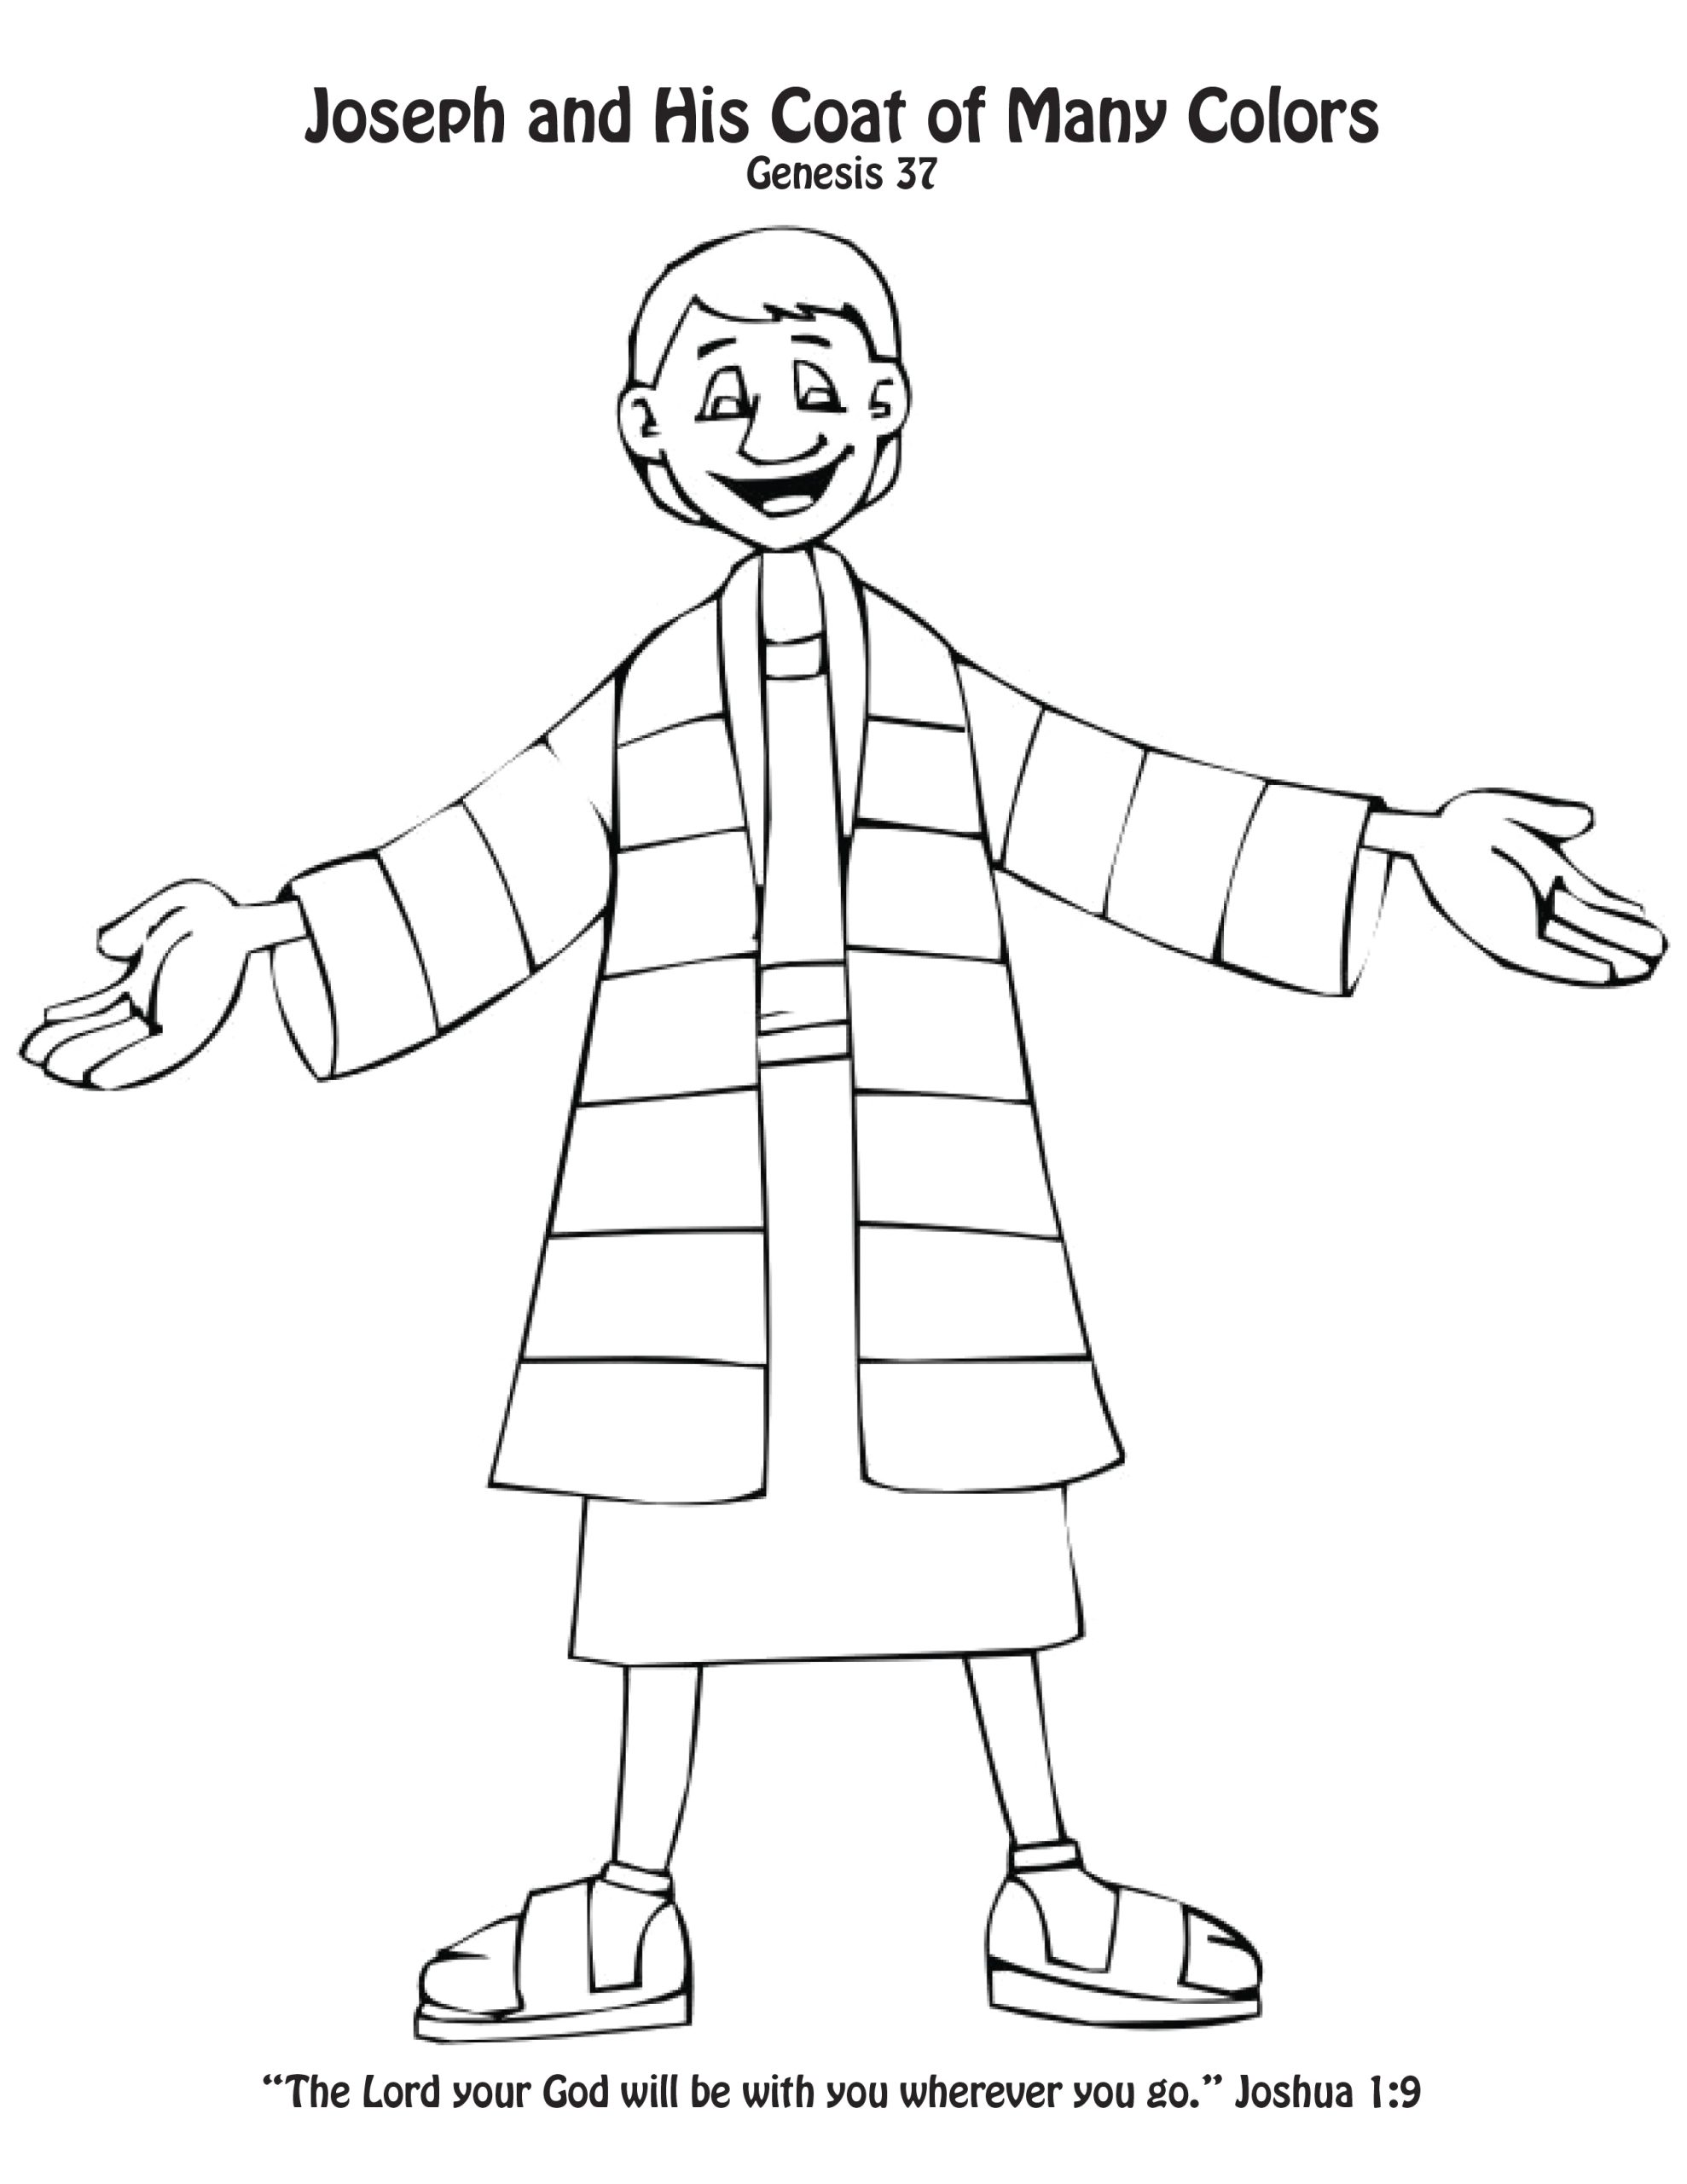 Coloring Page Of Joseph and His Coat Of Many Colors Joseph S Coat Of Many Colors Craft Coloring Page toddlers